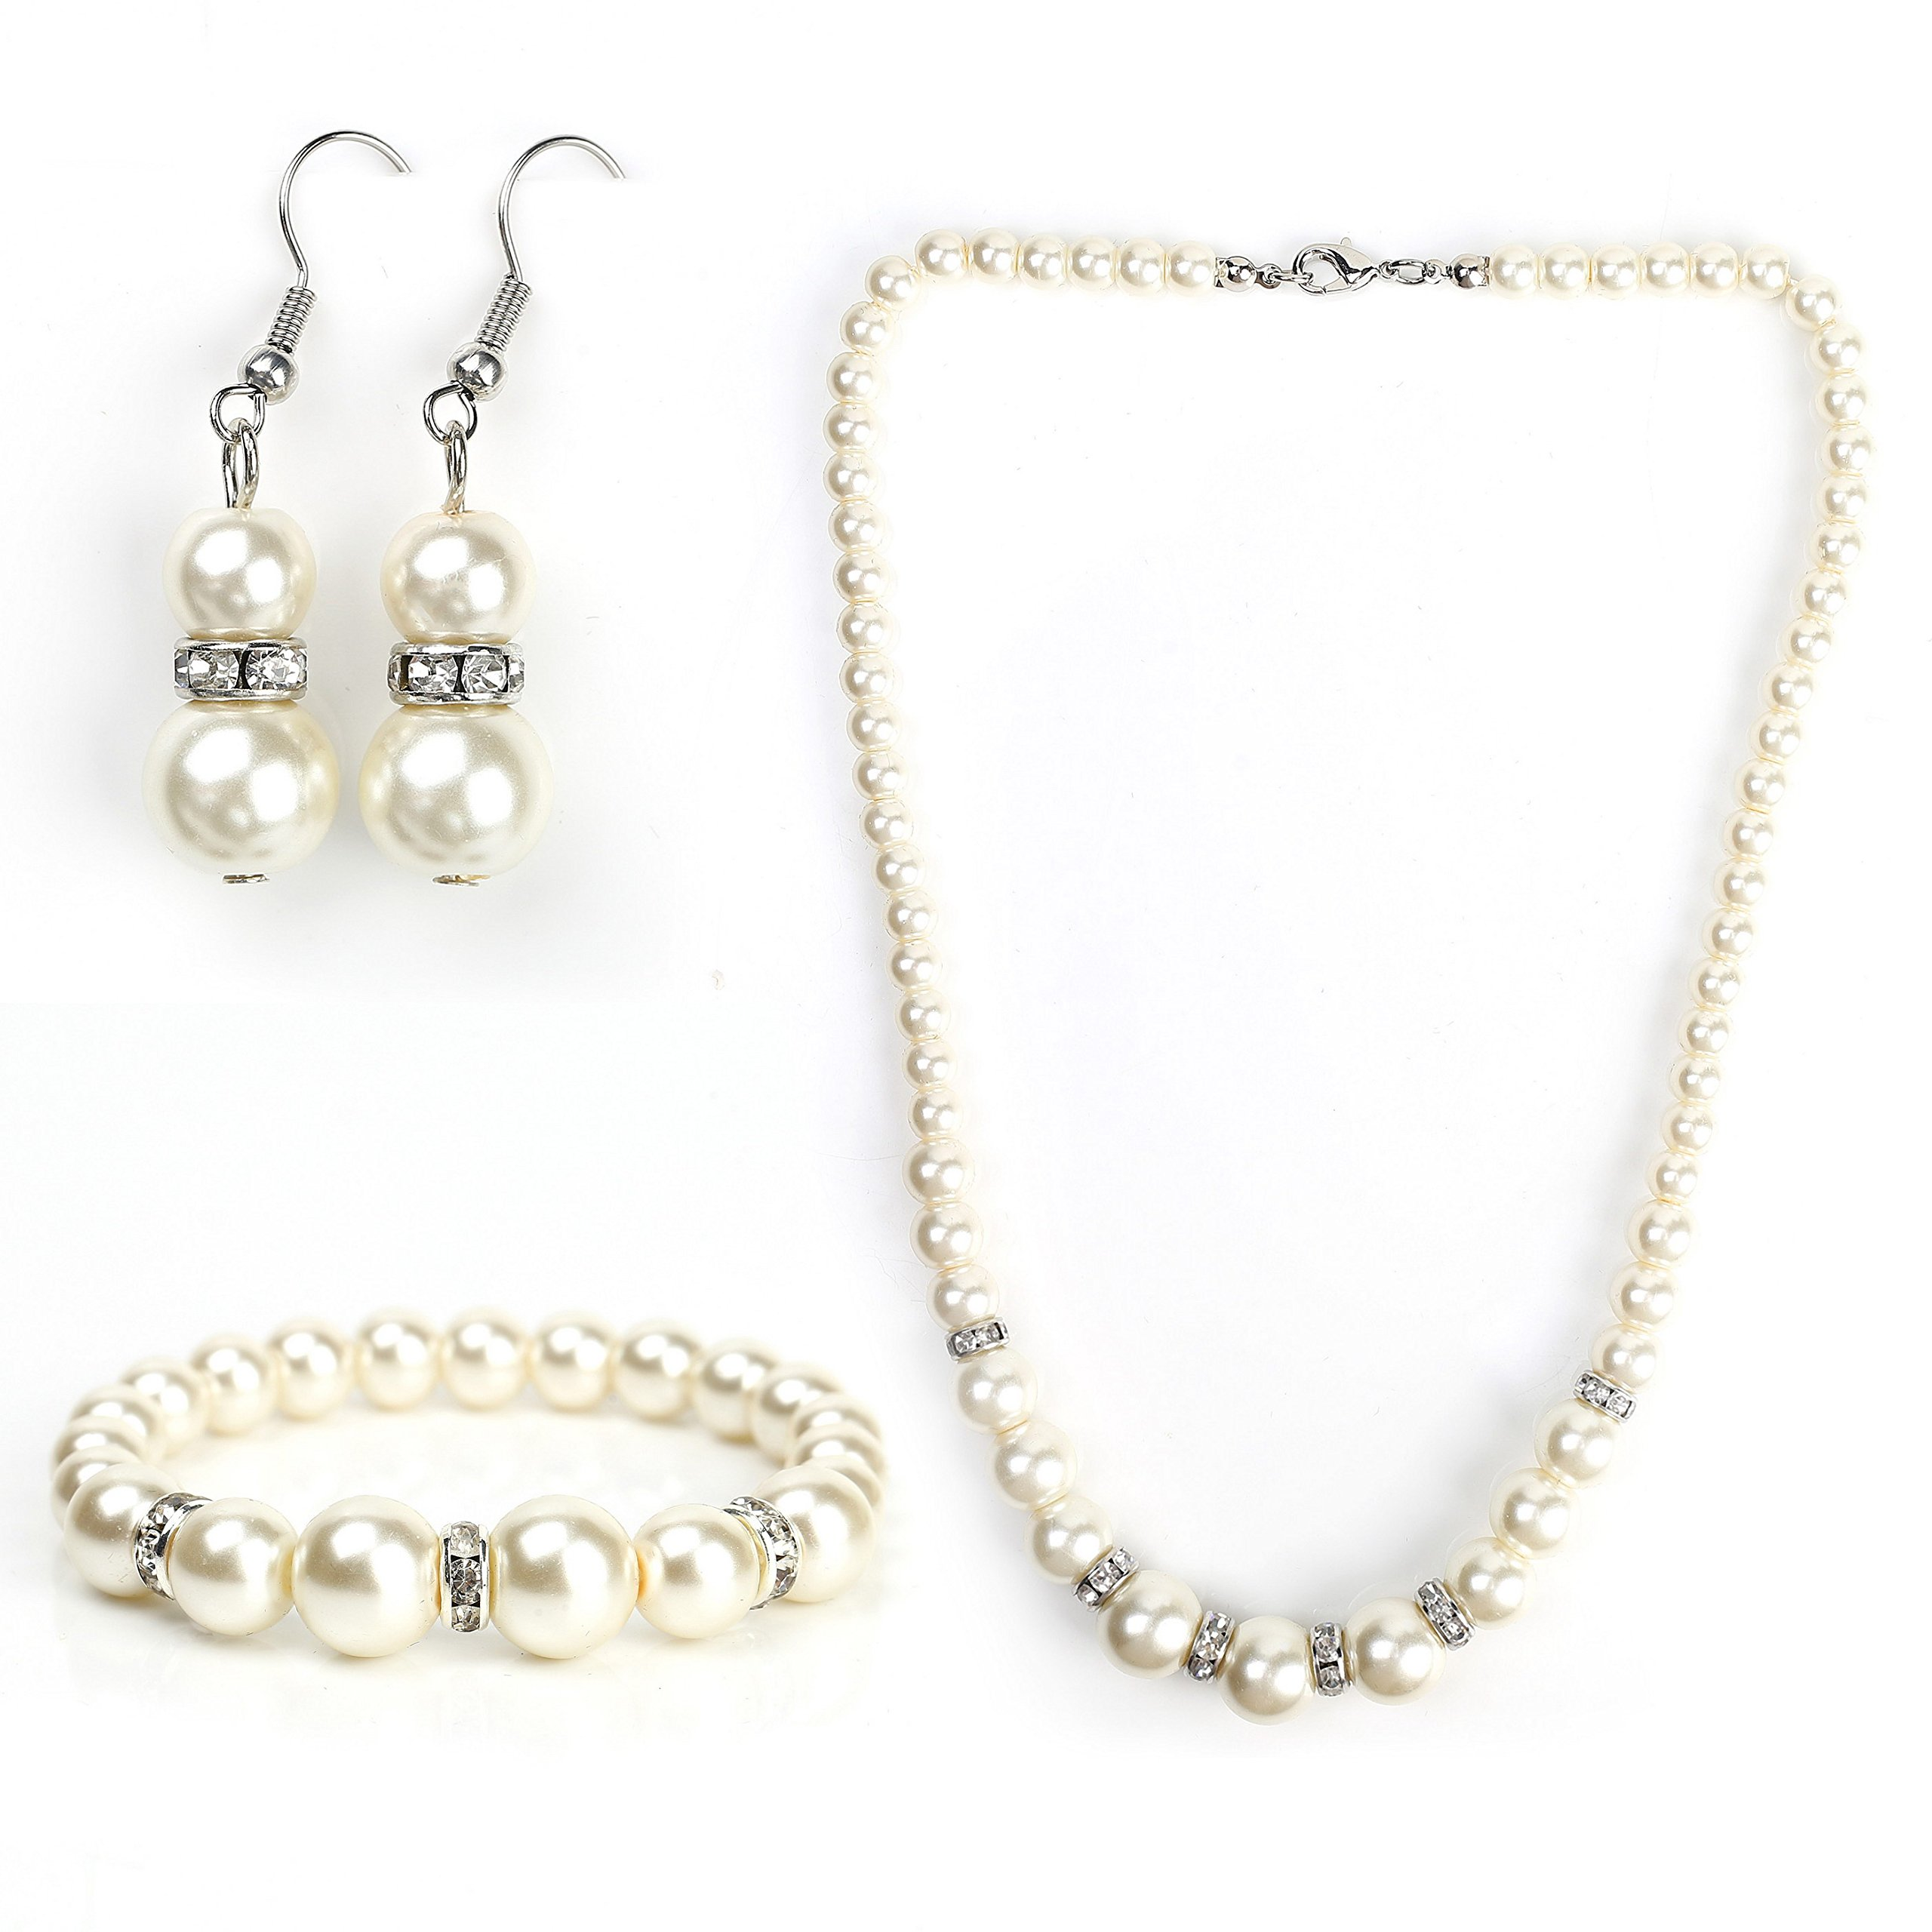 United Elegance Classic Faux Pearl Set - Graduated Necklace, Drop Earrings and Coordinating Bracelet with Swarovski Style Crystals